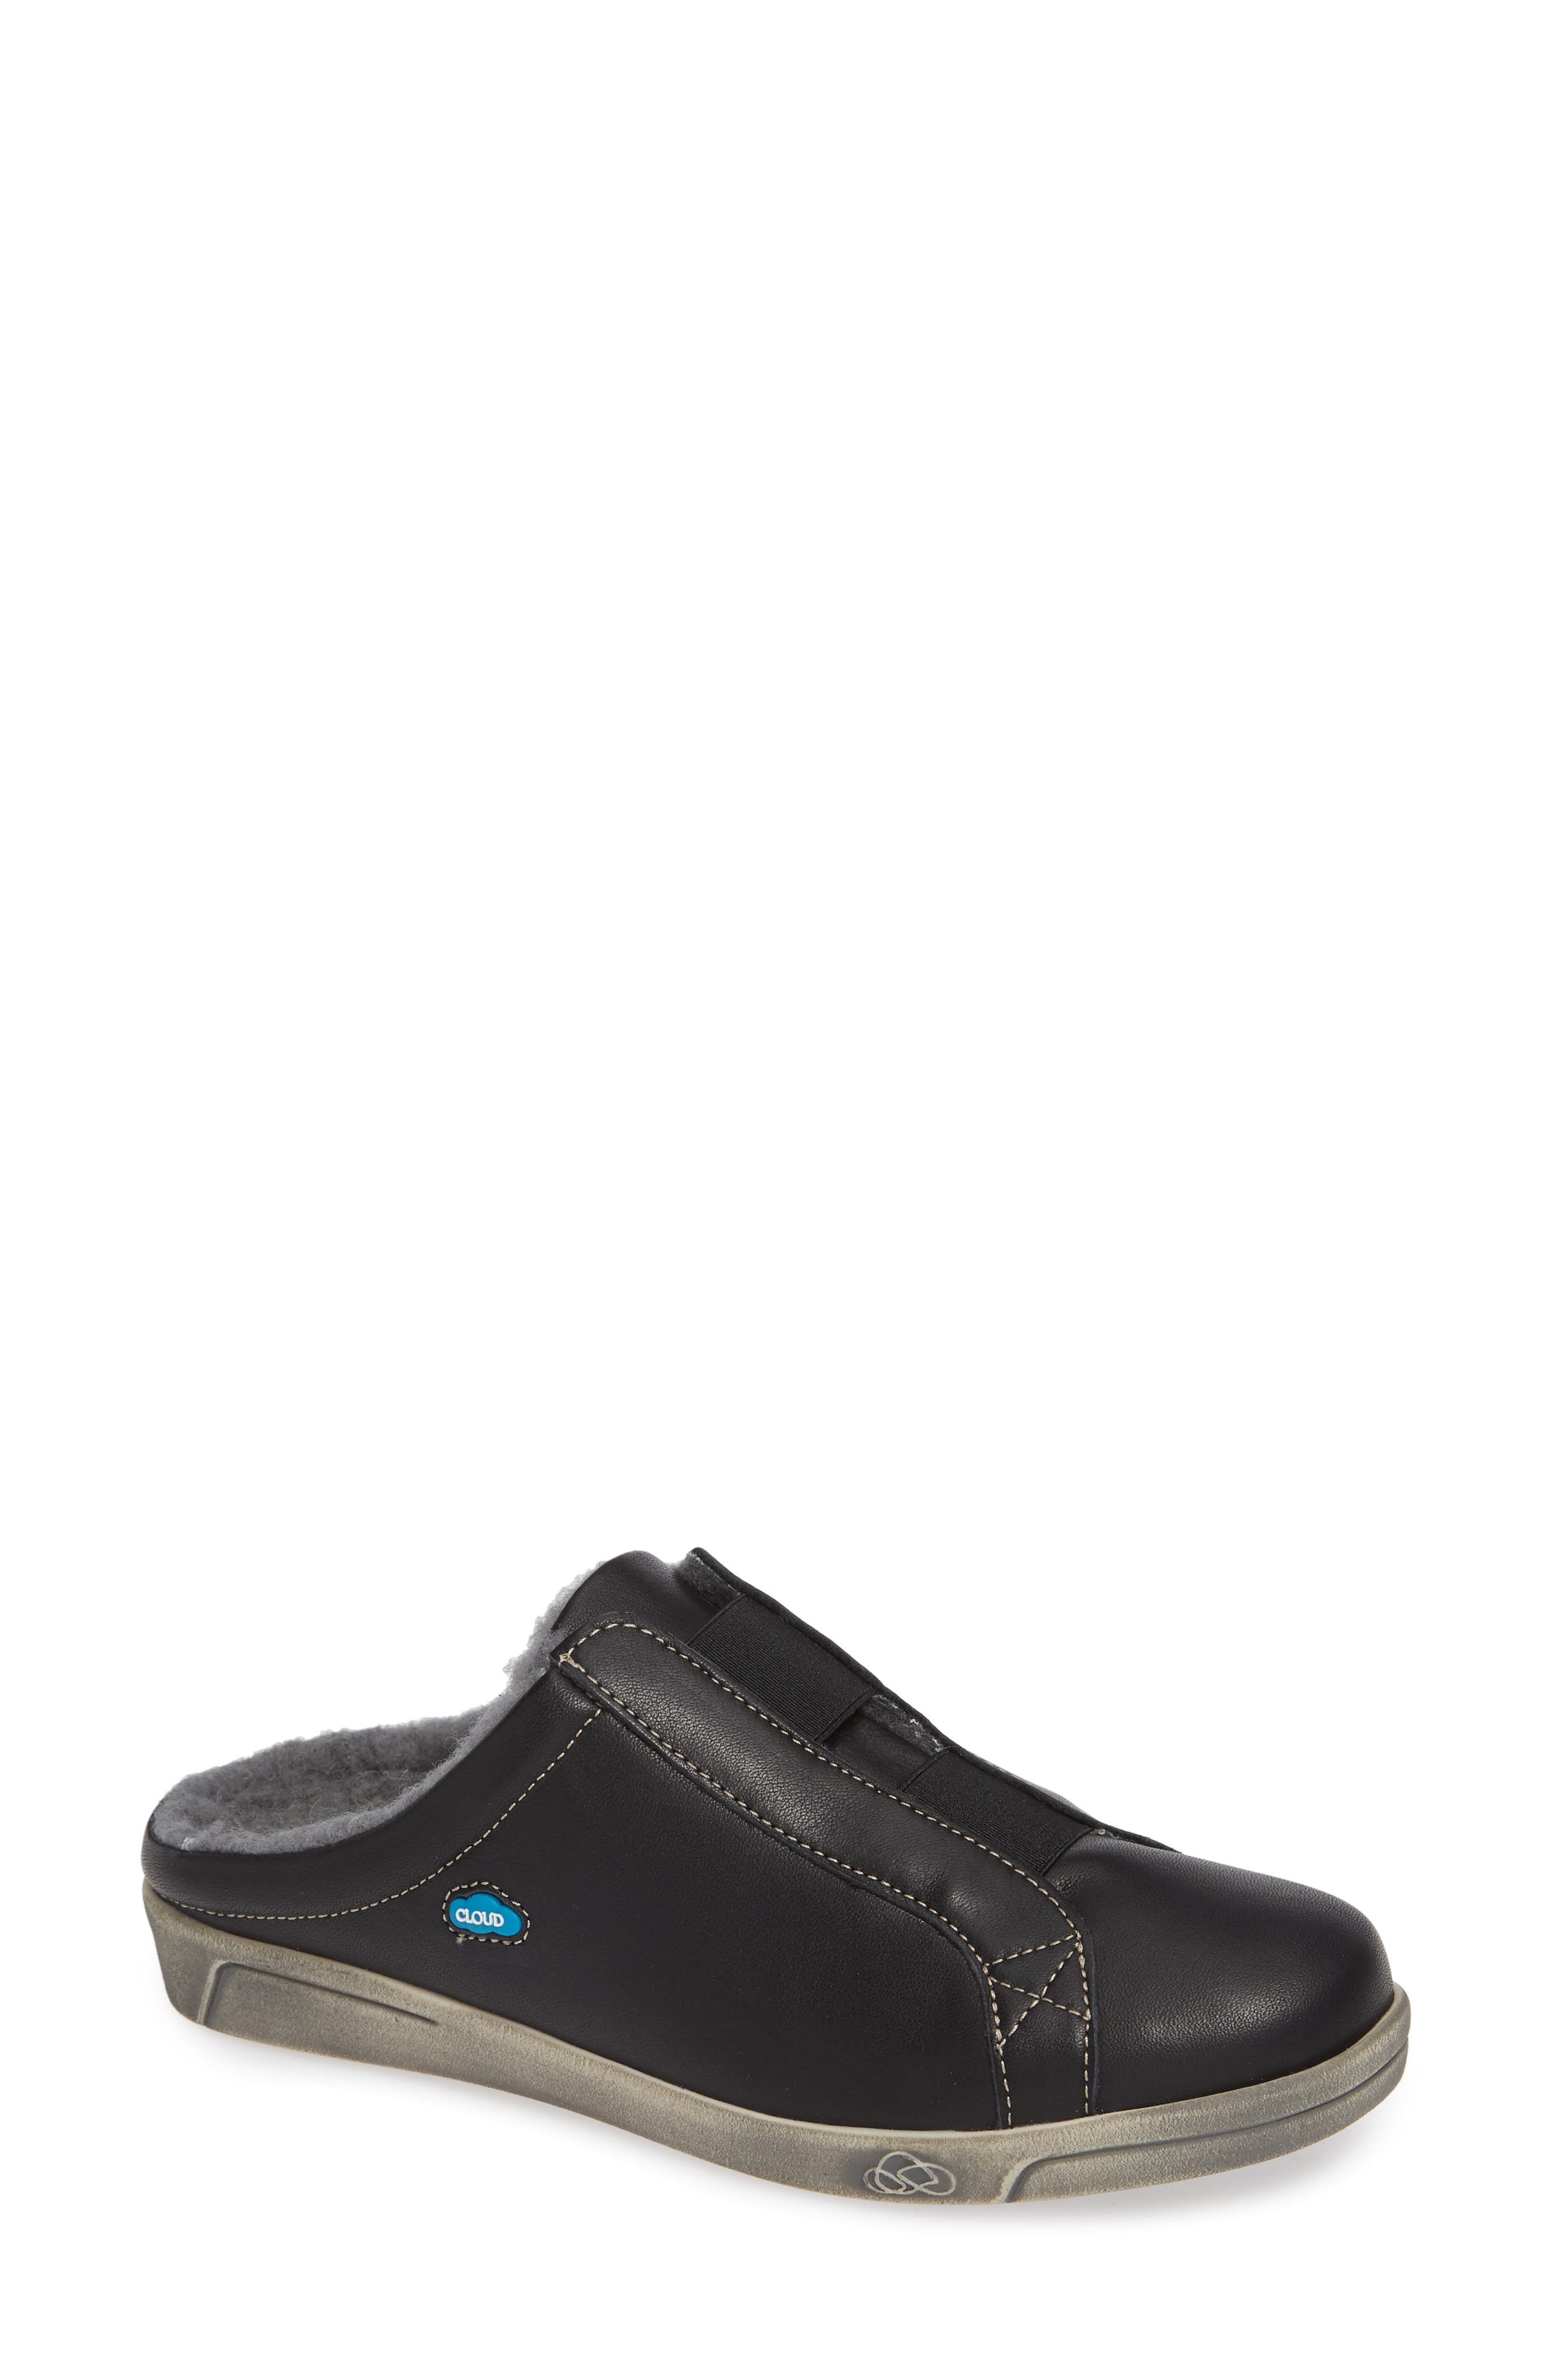 Alexis Wool Lined Backless Sneaker,                             Main thumbnail 1, color,                             BLACK LEATHER